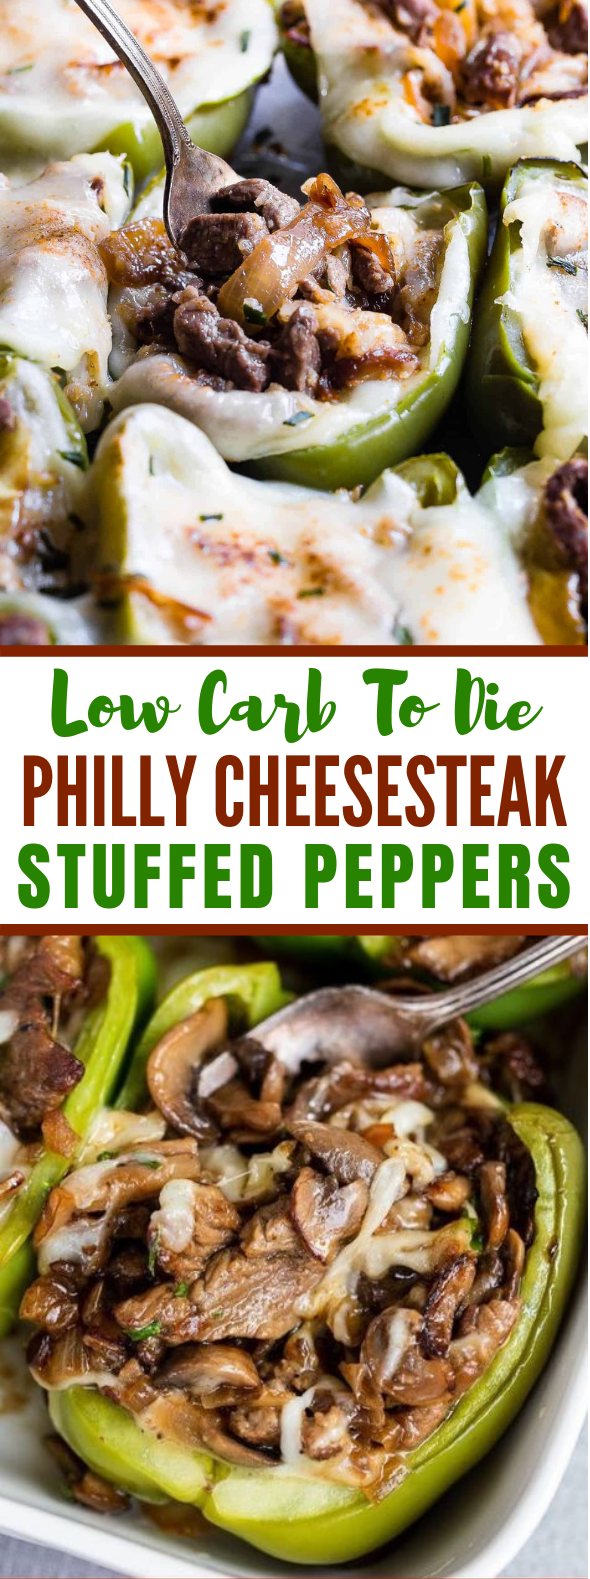 Philly Cheesesteak Stuffed Peppers (low-carb) #diet #dinnerhealthy